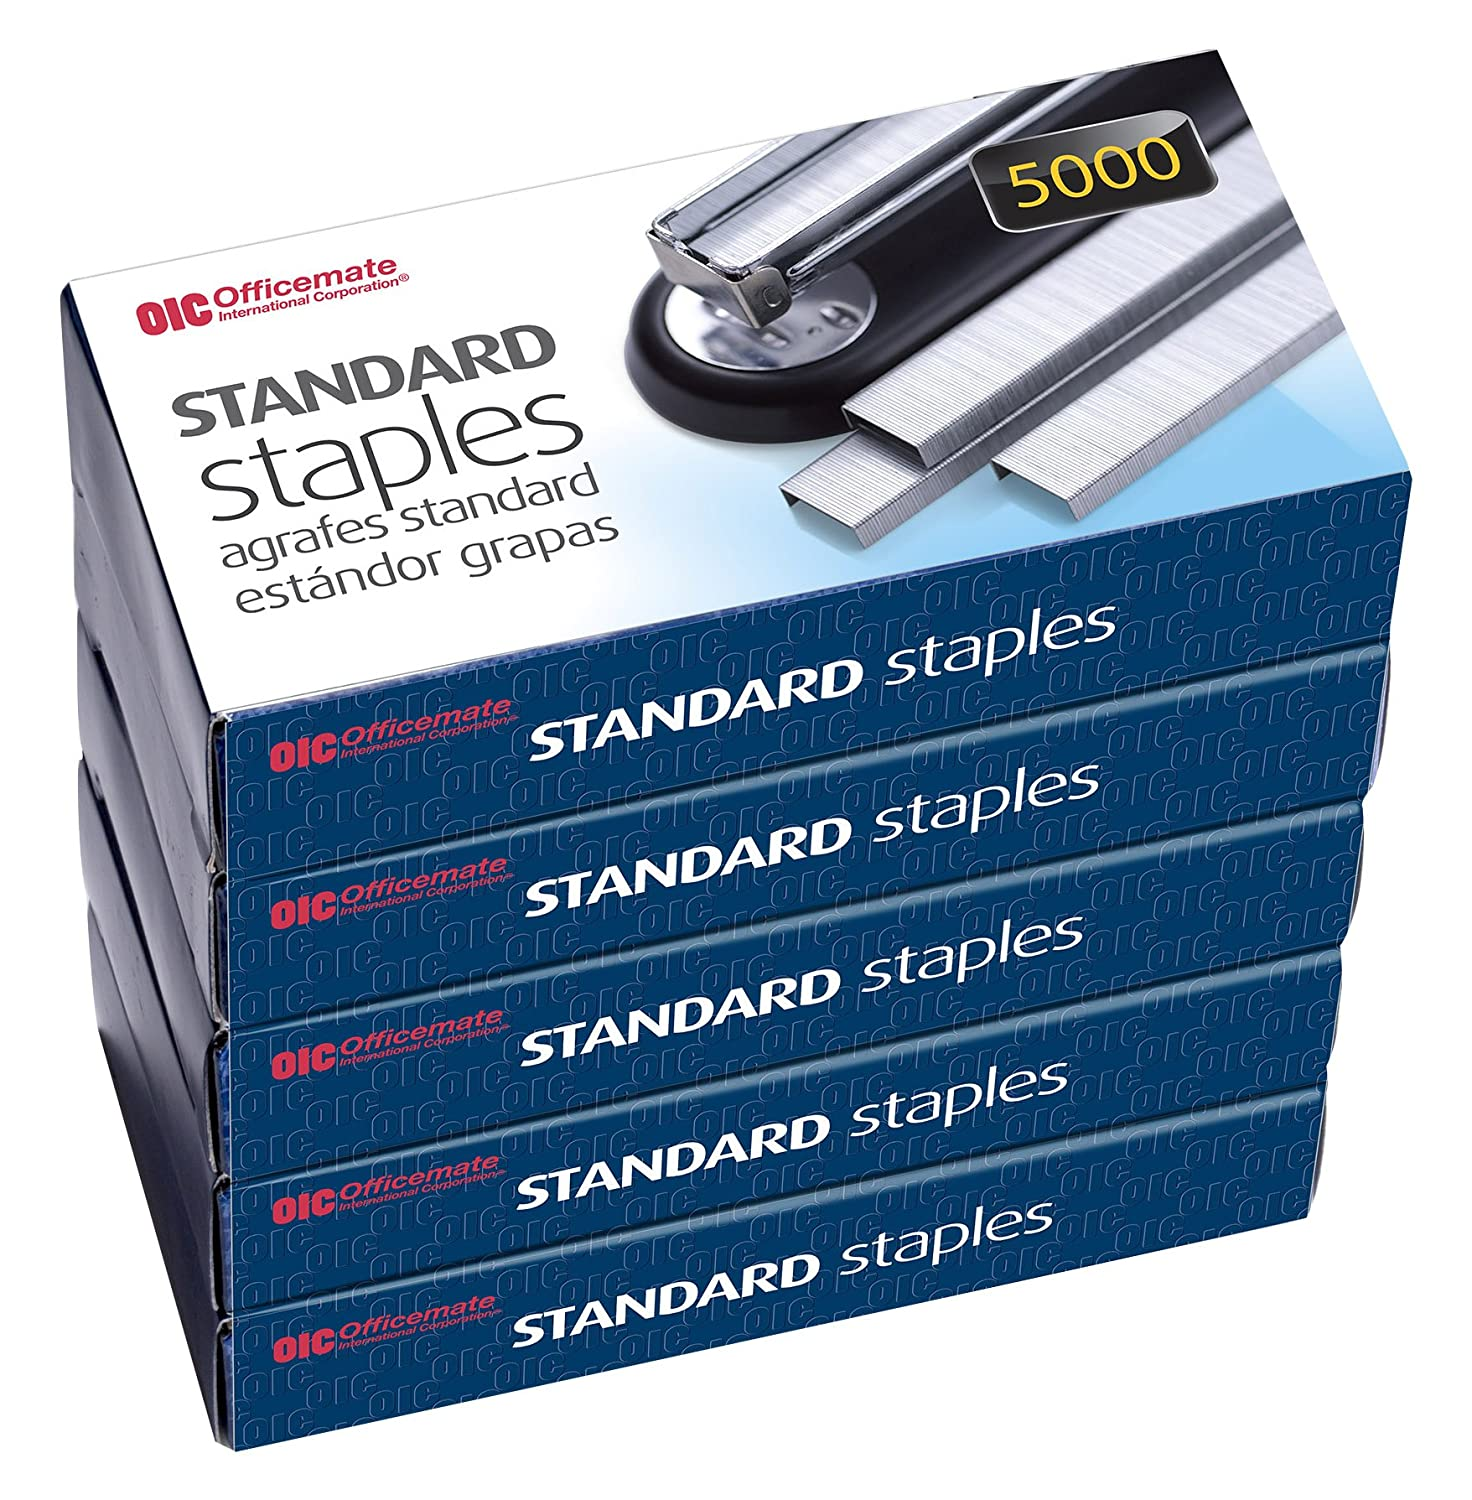 Officemate Standard Staples, 210 per strip, 20 Sheets Capacity, 5,000 per Box, 5 Boxes (91900) - Bundle Includes a Letter Opener